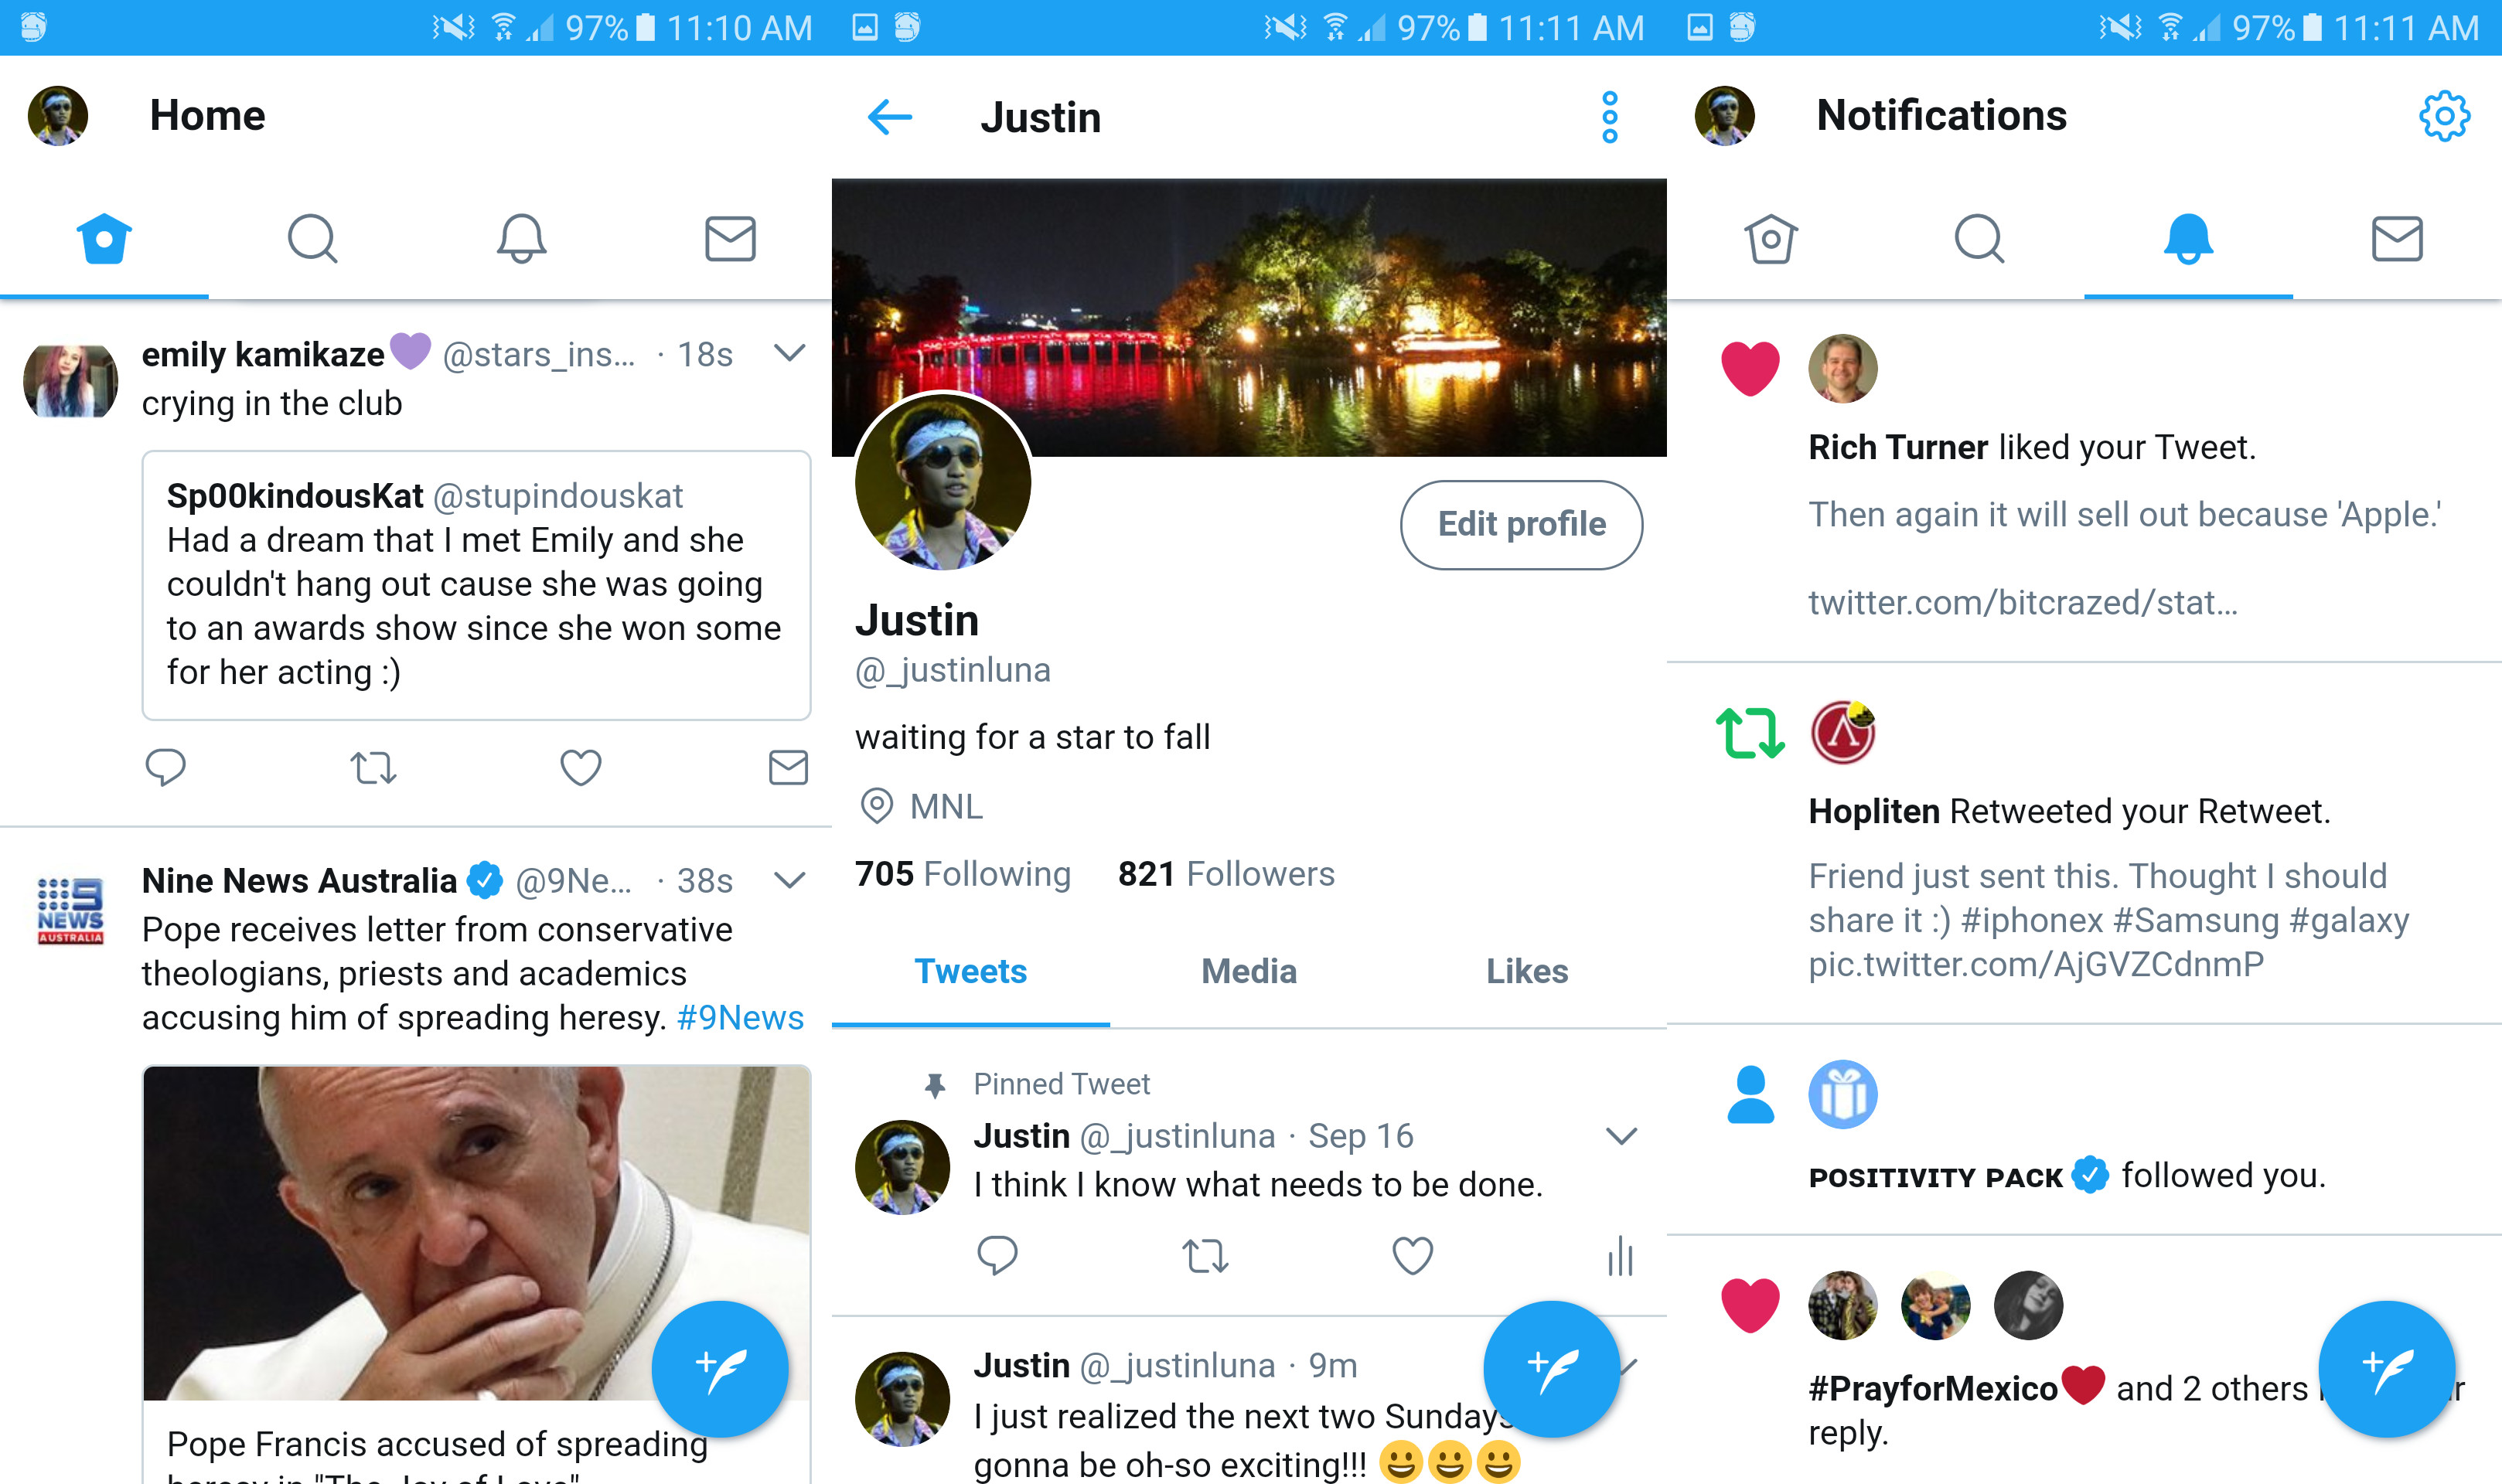 Twitter Lite app for Android being tested, optimized for slow data speeds